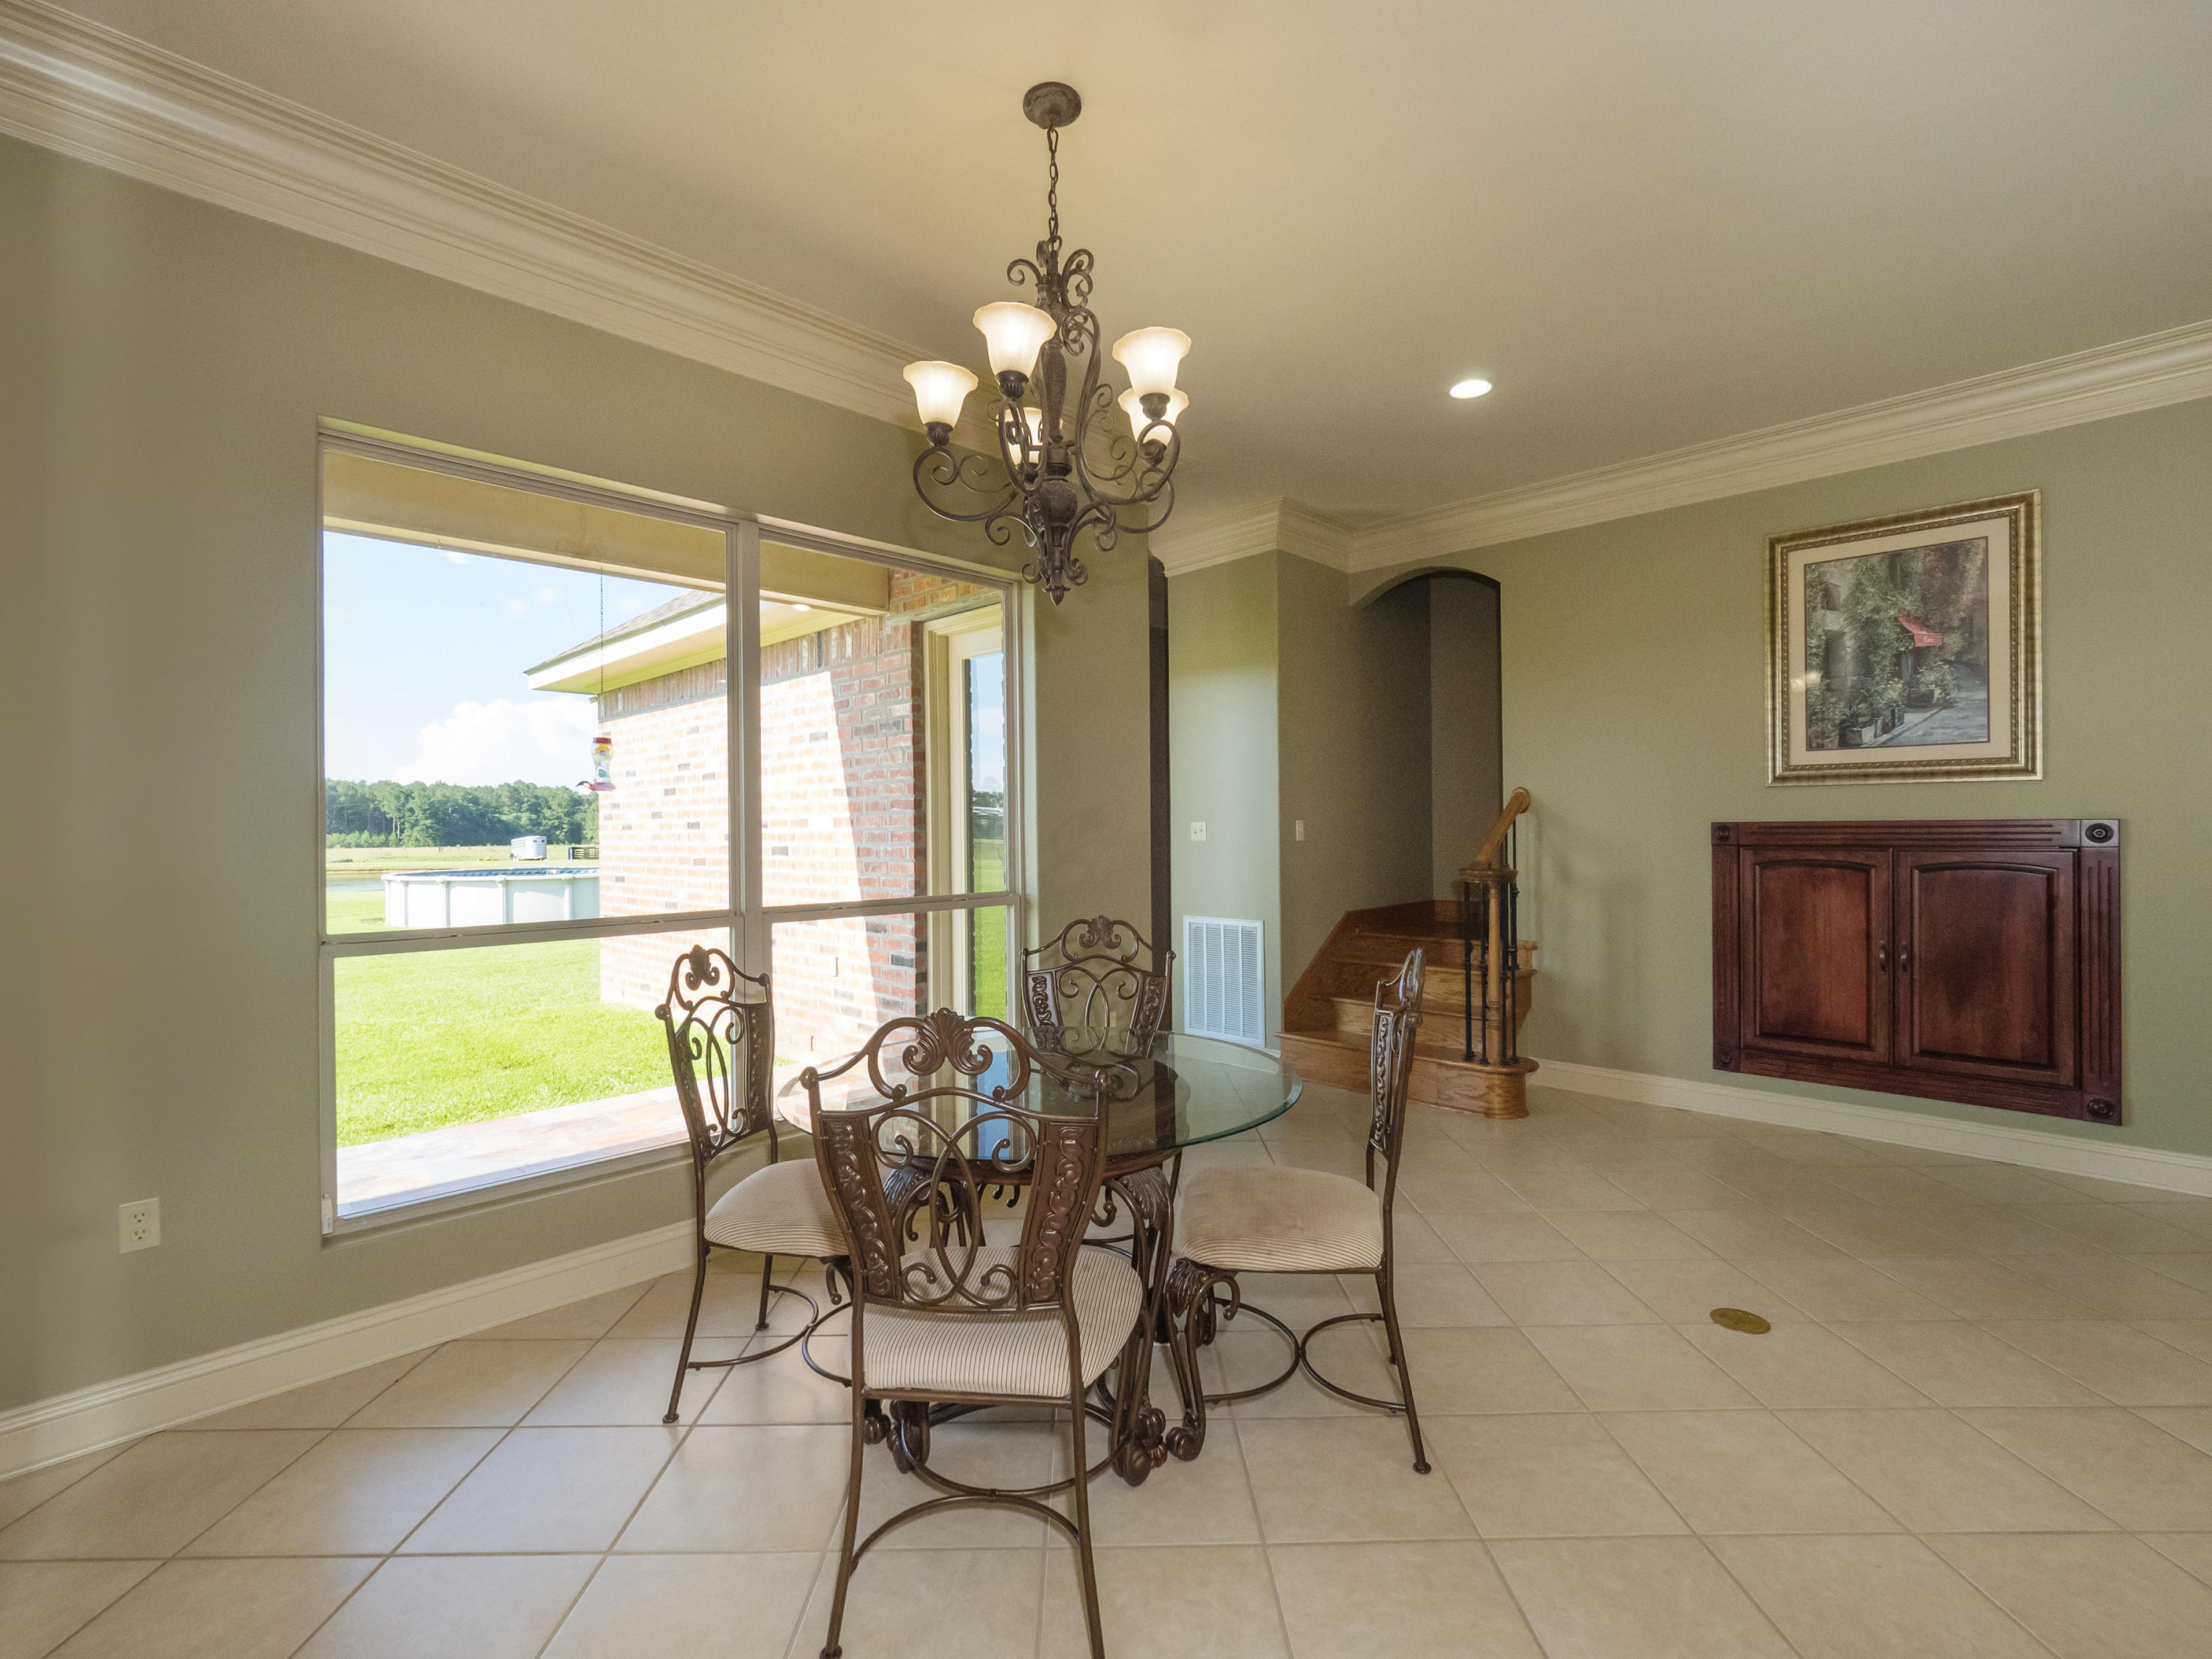 DeRidder home for sale, 3138 Lumas Rd, DeRidder LA - $659,000